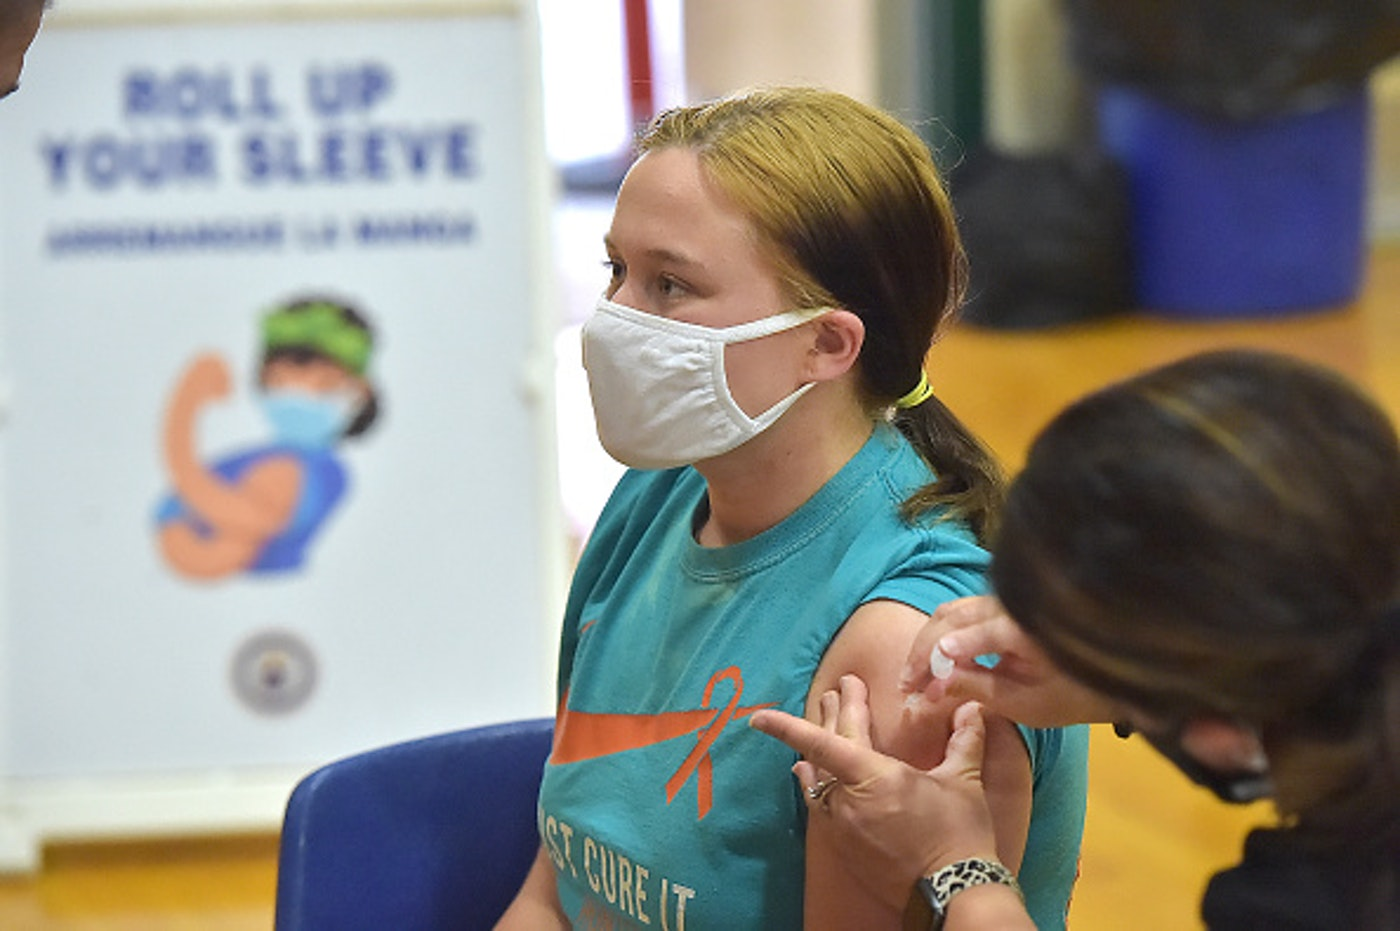 """Junior Molly Day gets her first Pfizer COVID vaccine at Ridley High School in Delaware County, Monday afternoon May, 3, 2021, as part of a clinic for students age 16-18. """"It feels good, I'm happy I can protect myself and others,"""" Day said after she got the shot. (Daily Times Photo via Getty Images/Pete Bannan)"""